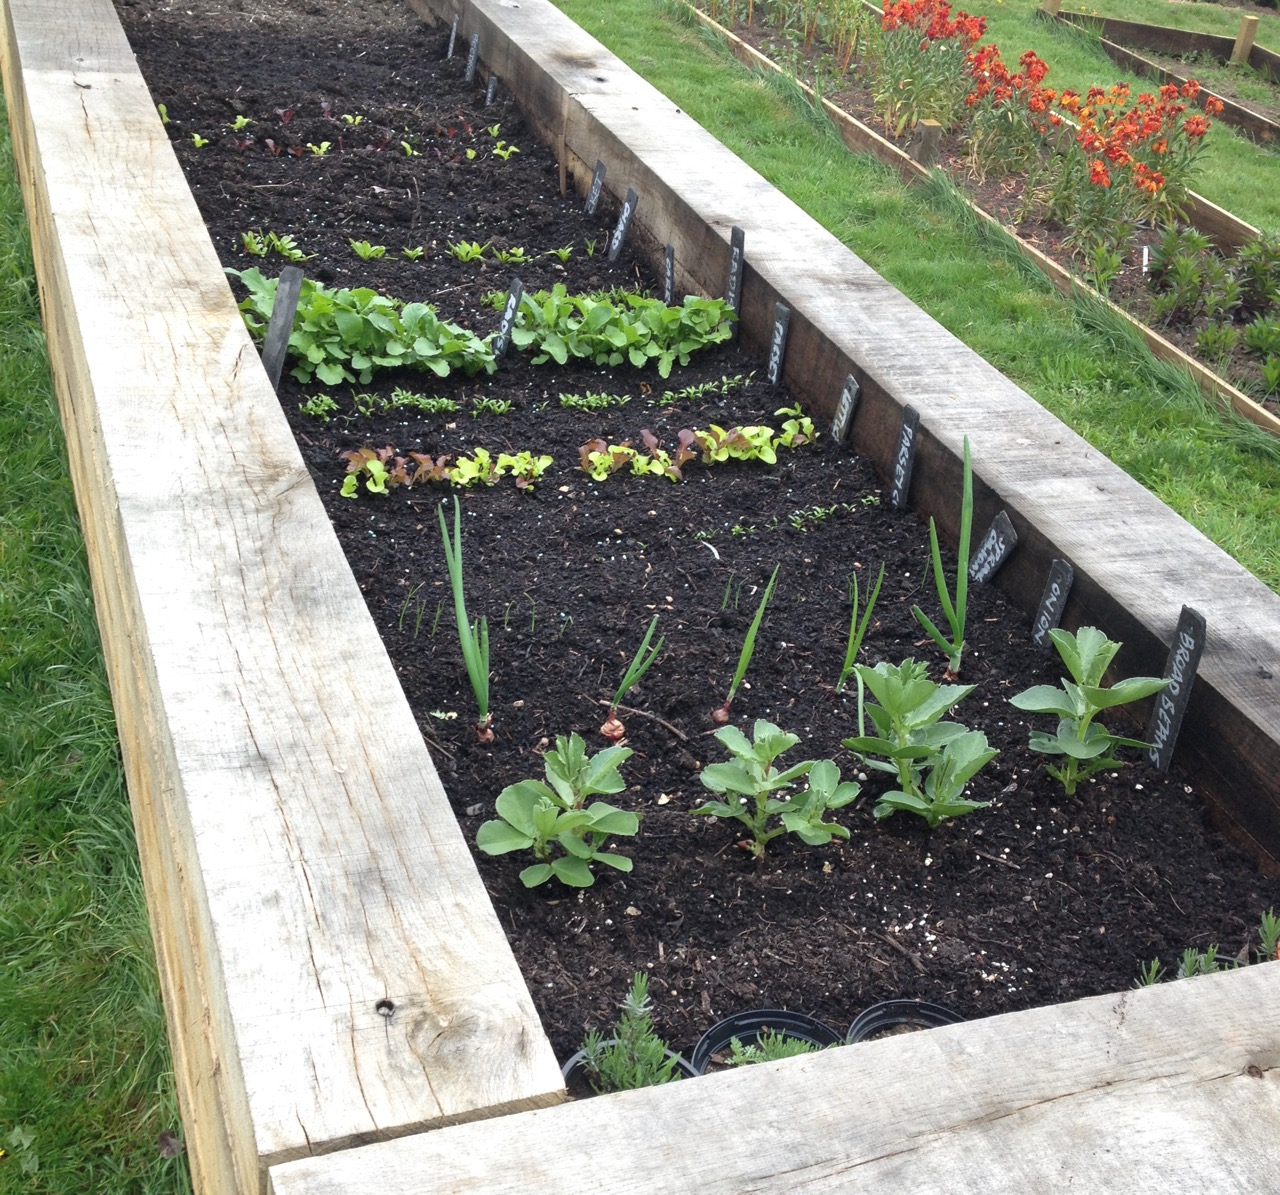 The salad bed is doing really well -especially thanks to Barbara's watering between sessions.